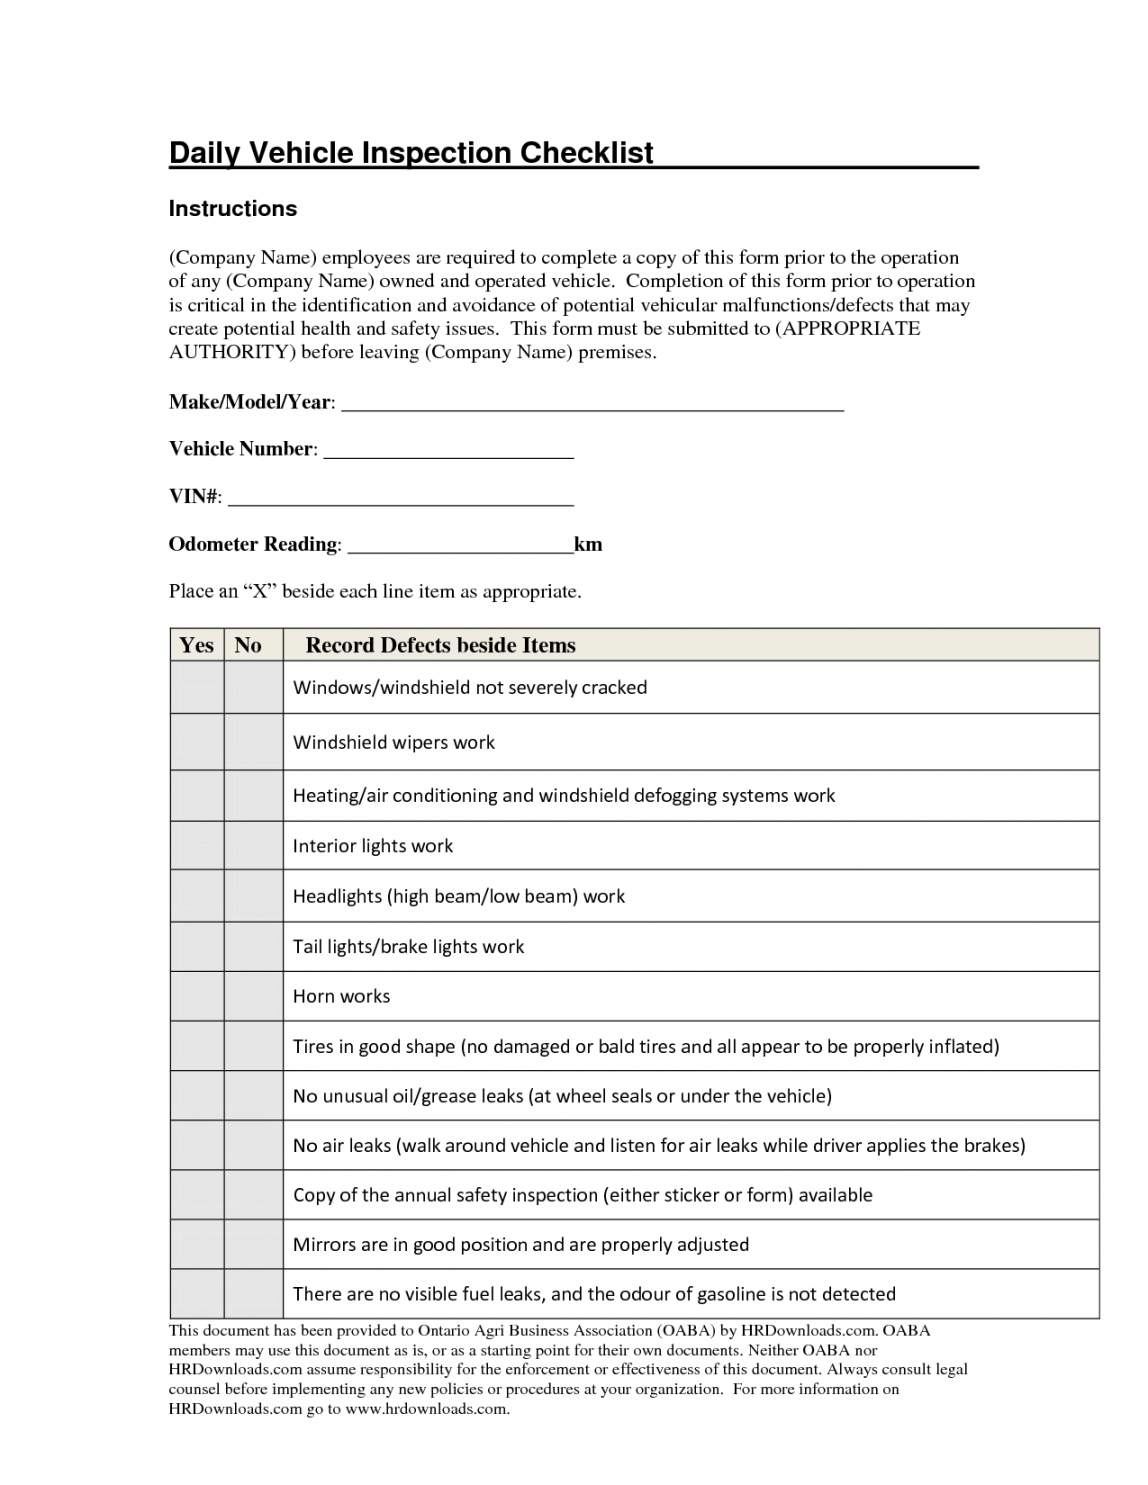 daily vehicle inspection checklist form image gallery  photogyps printer maintenance checklist template samples